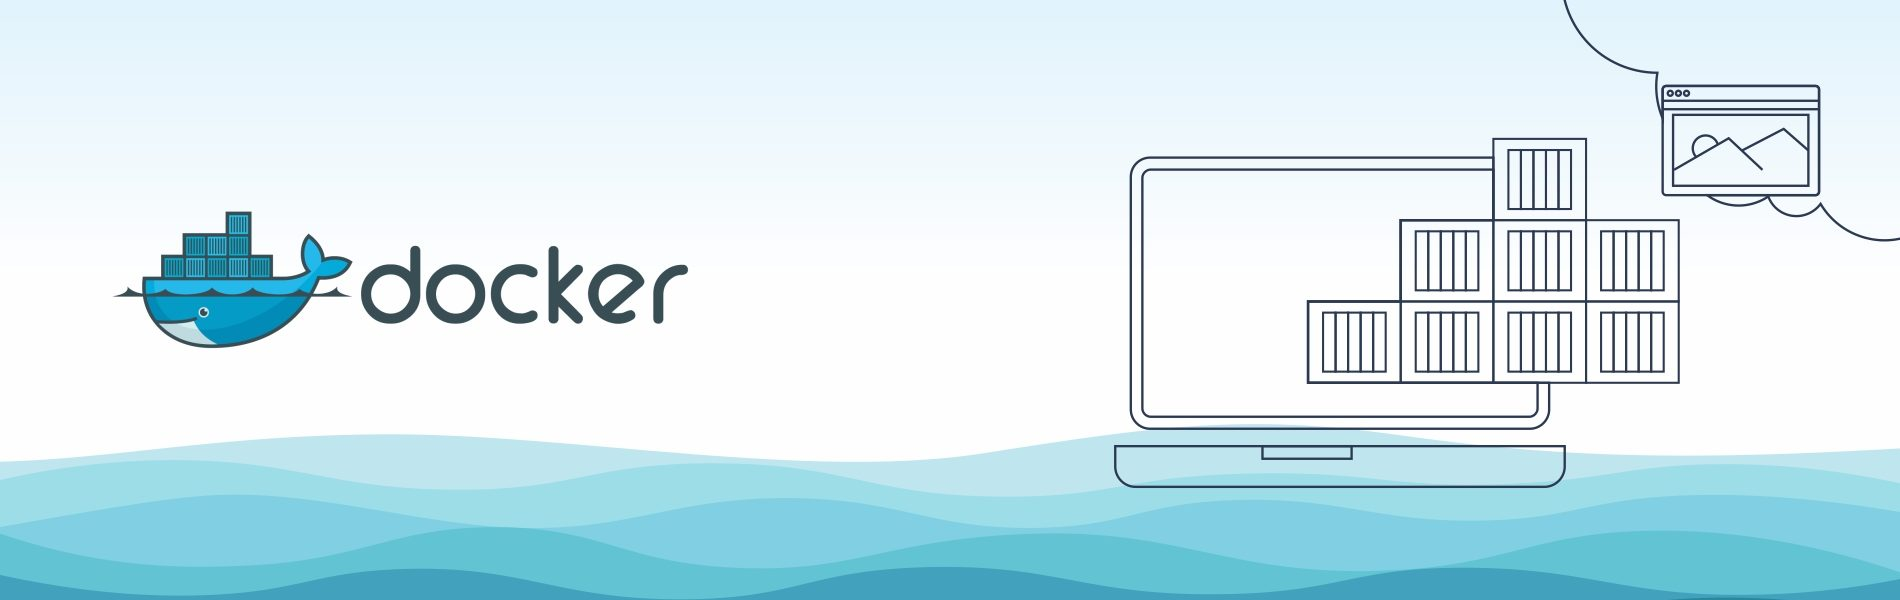 blog images-docker